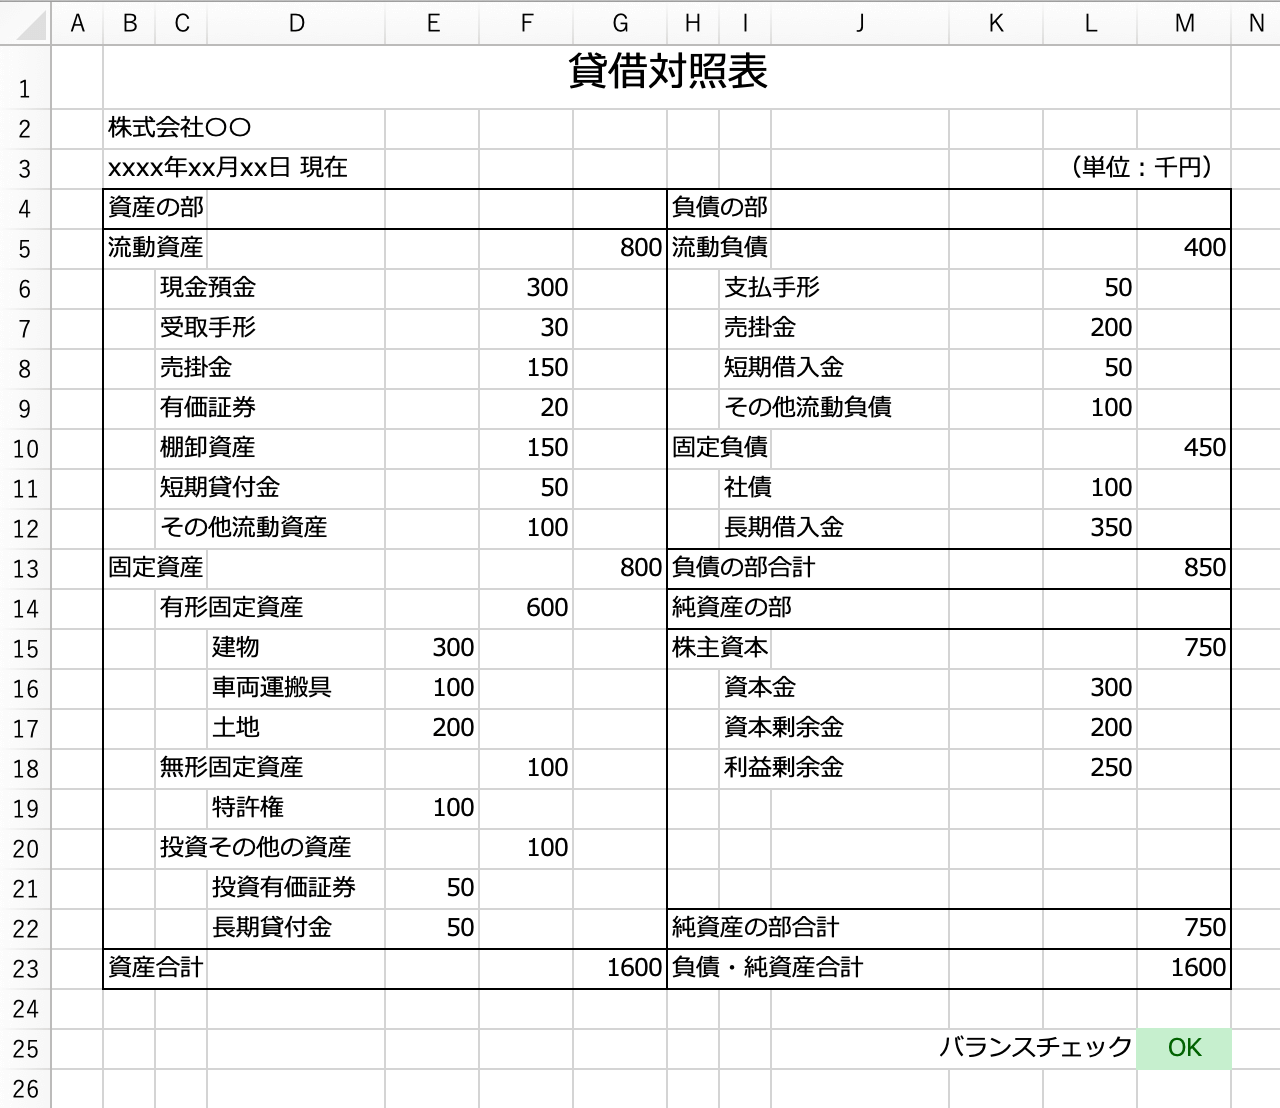 Excelで作った勘定式の貸借対照表